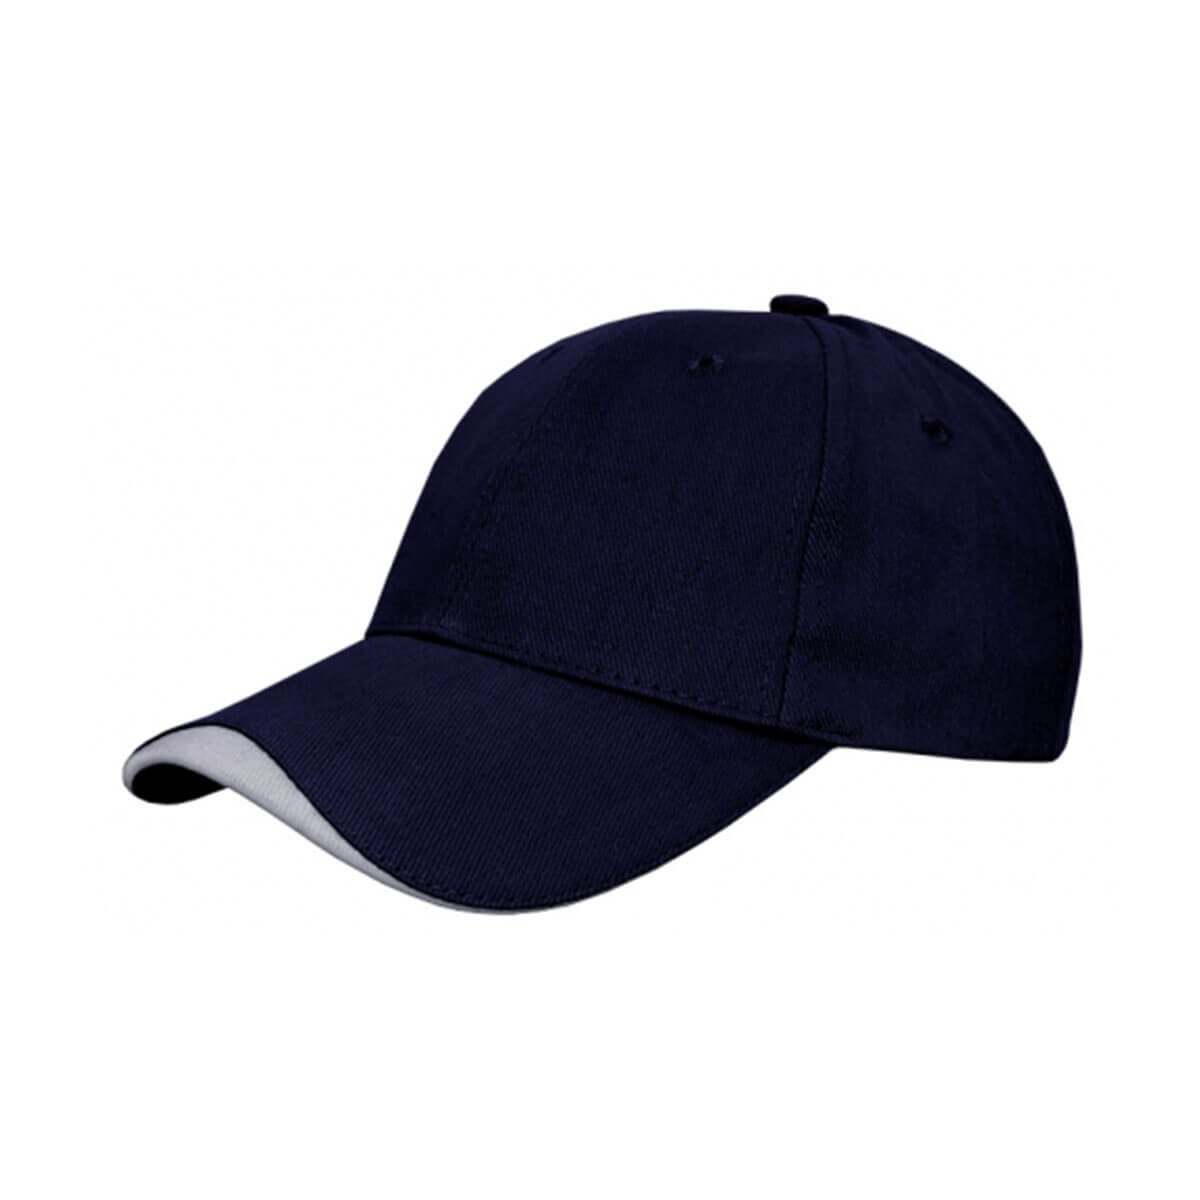 Kids Cap-Navy / White